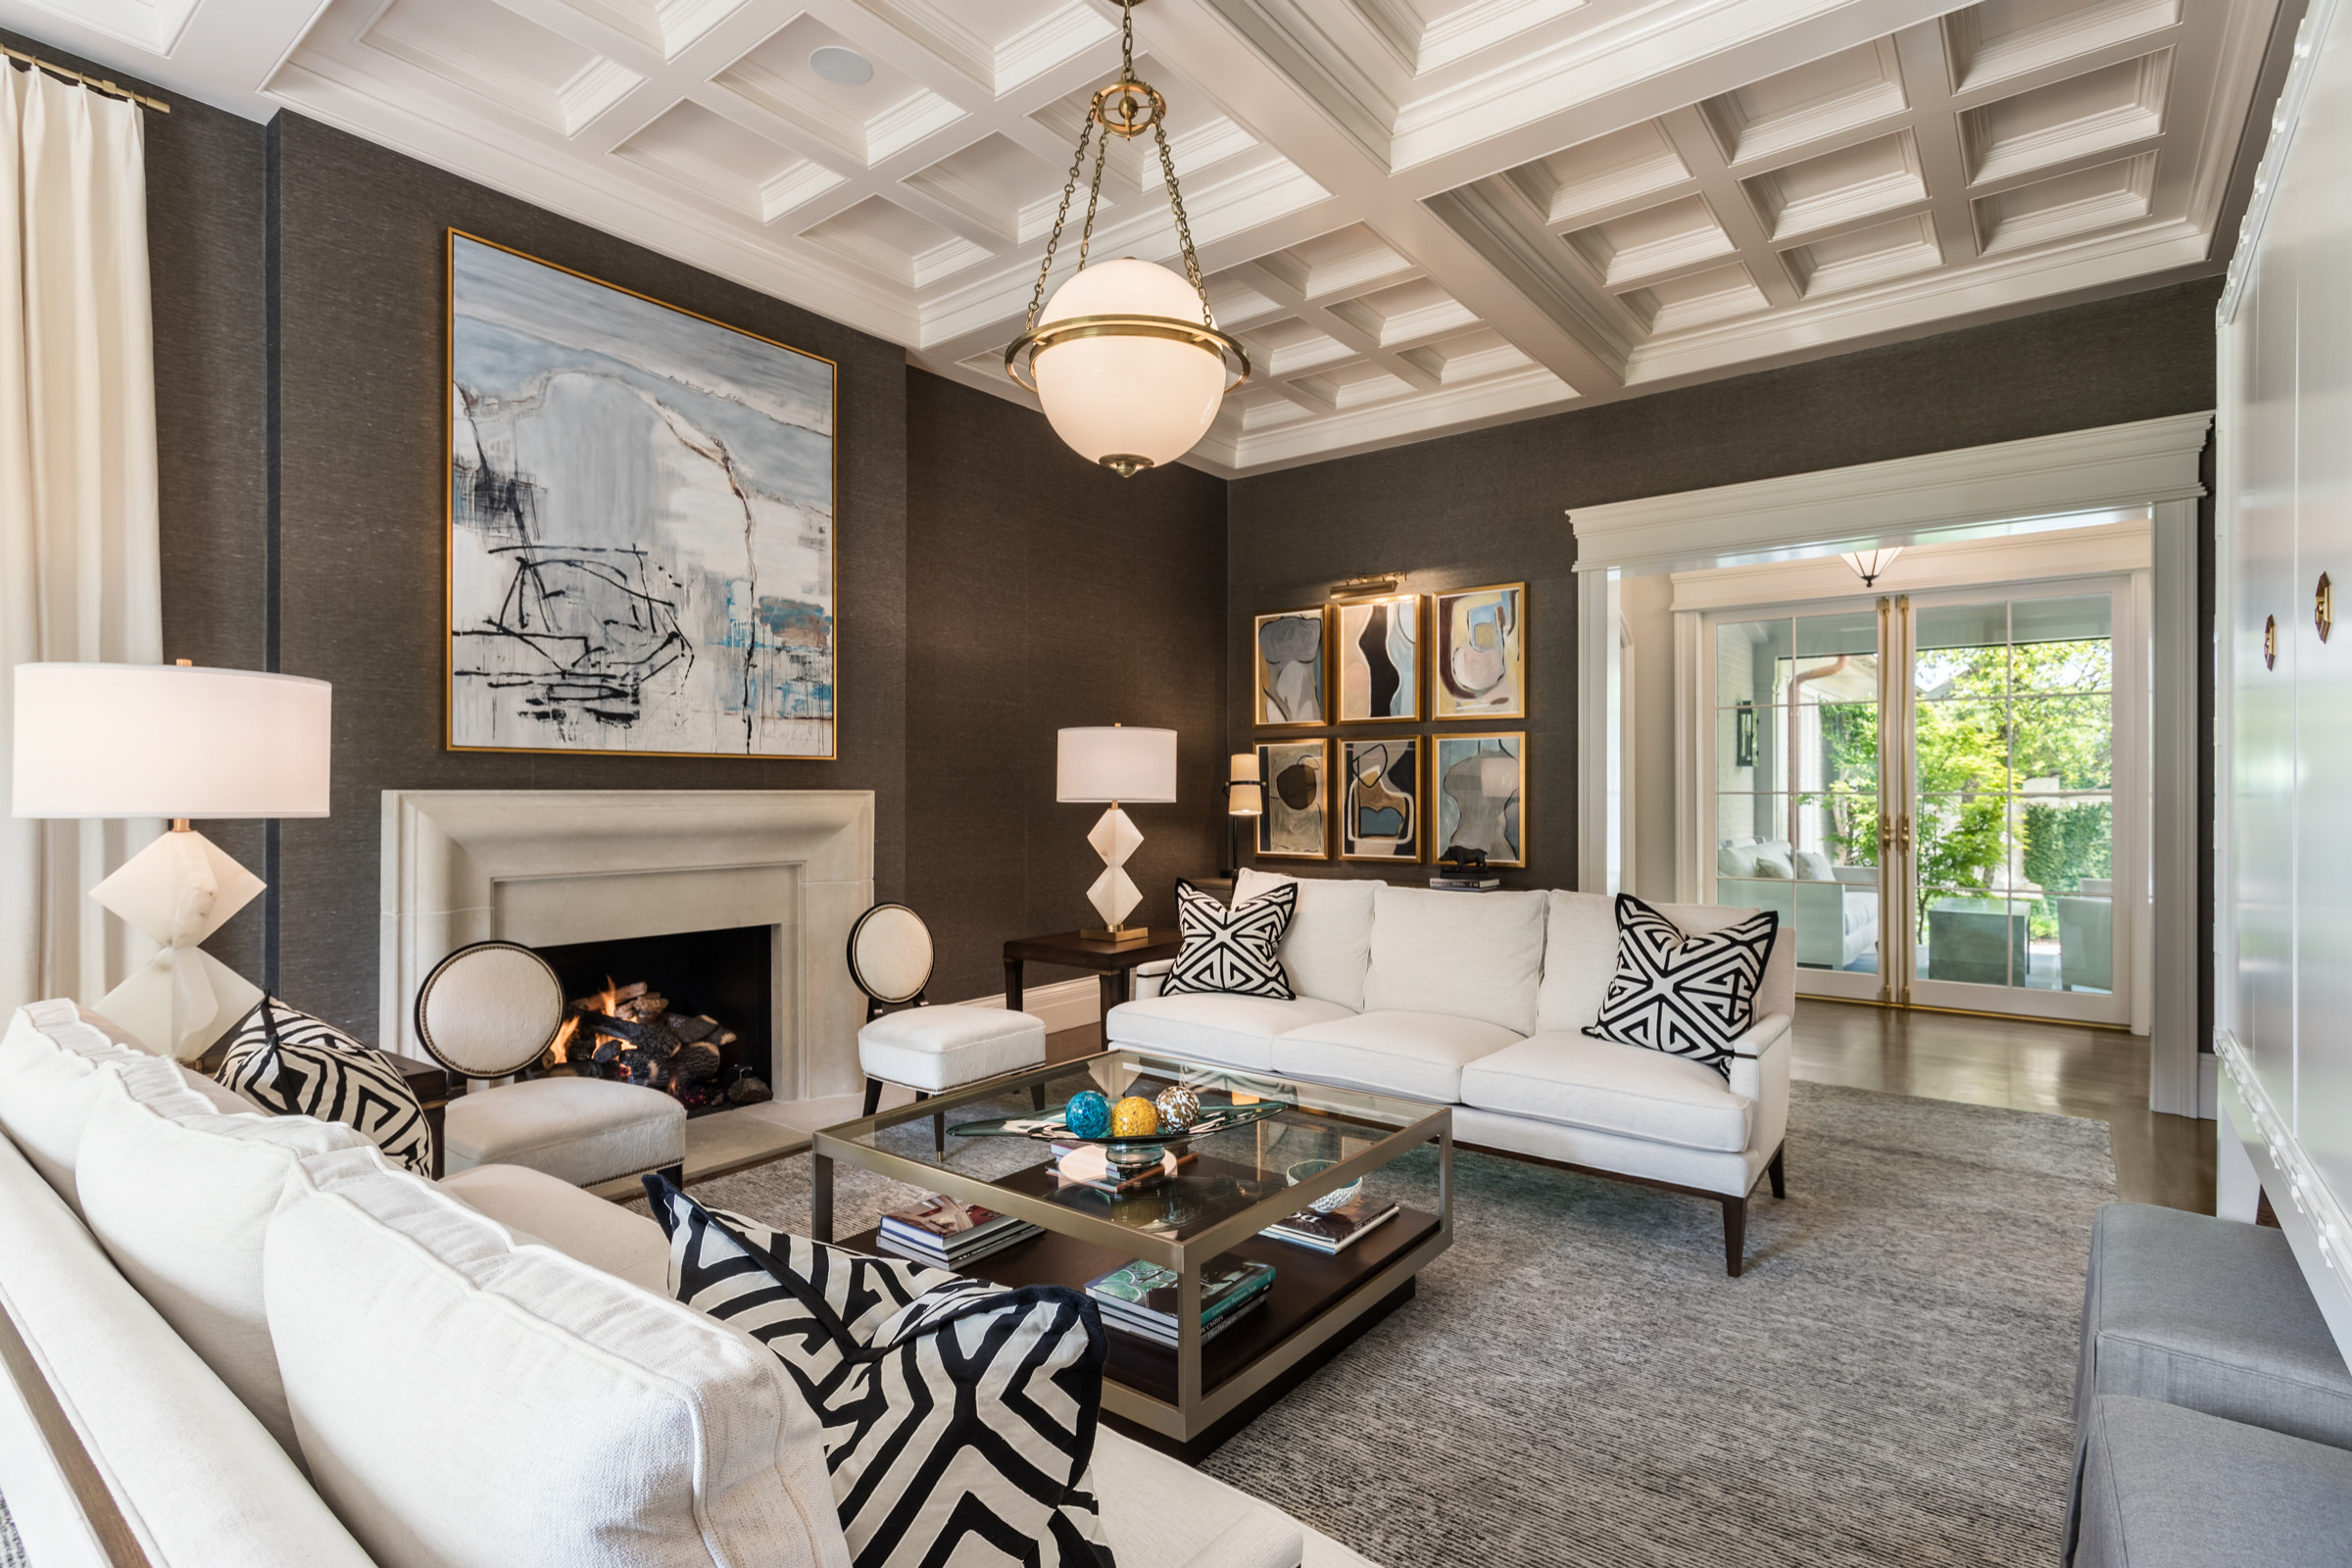 75 Beautiful Transitional Living Room With Brown Walls Pictures Ideas March 2021 Houzz